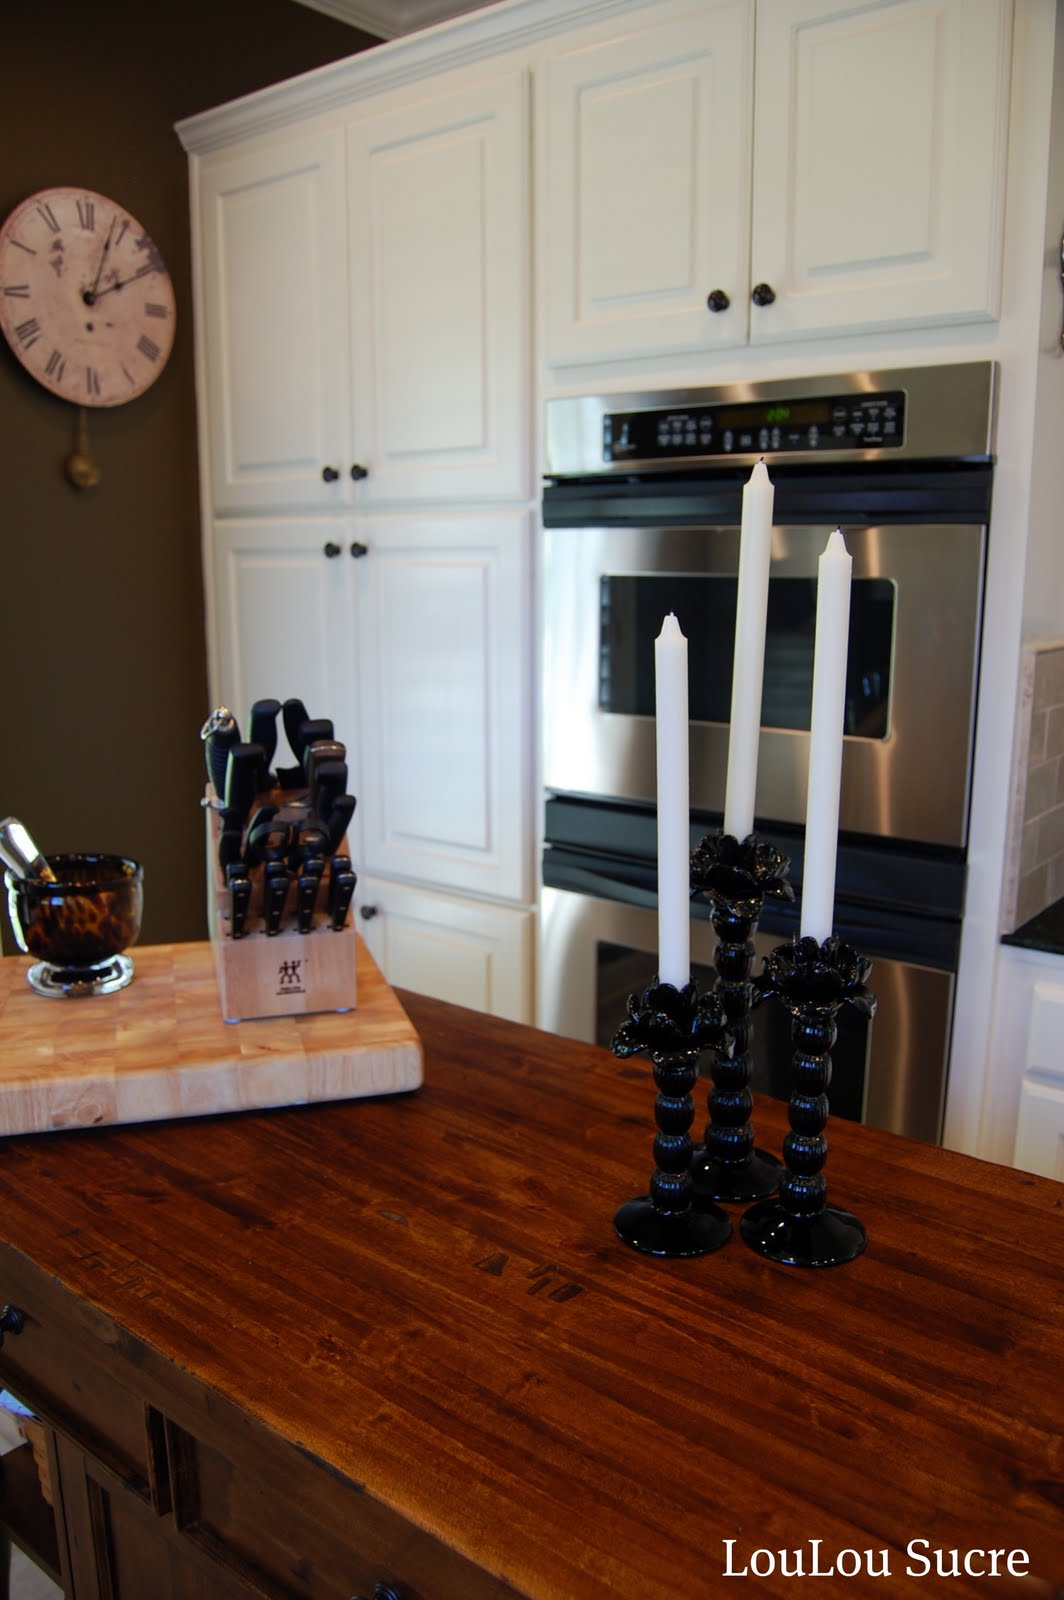 LouLou Sucre: Kitchen (Almost) Reveal